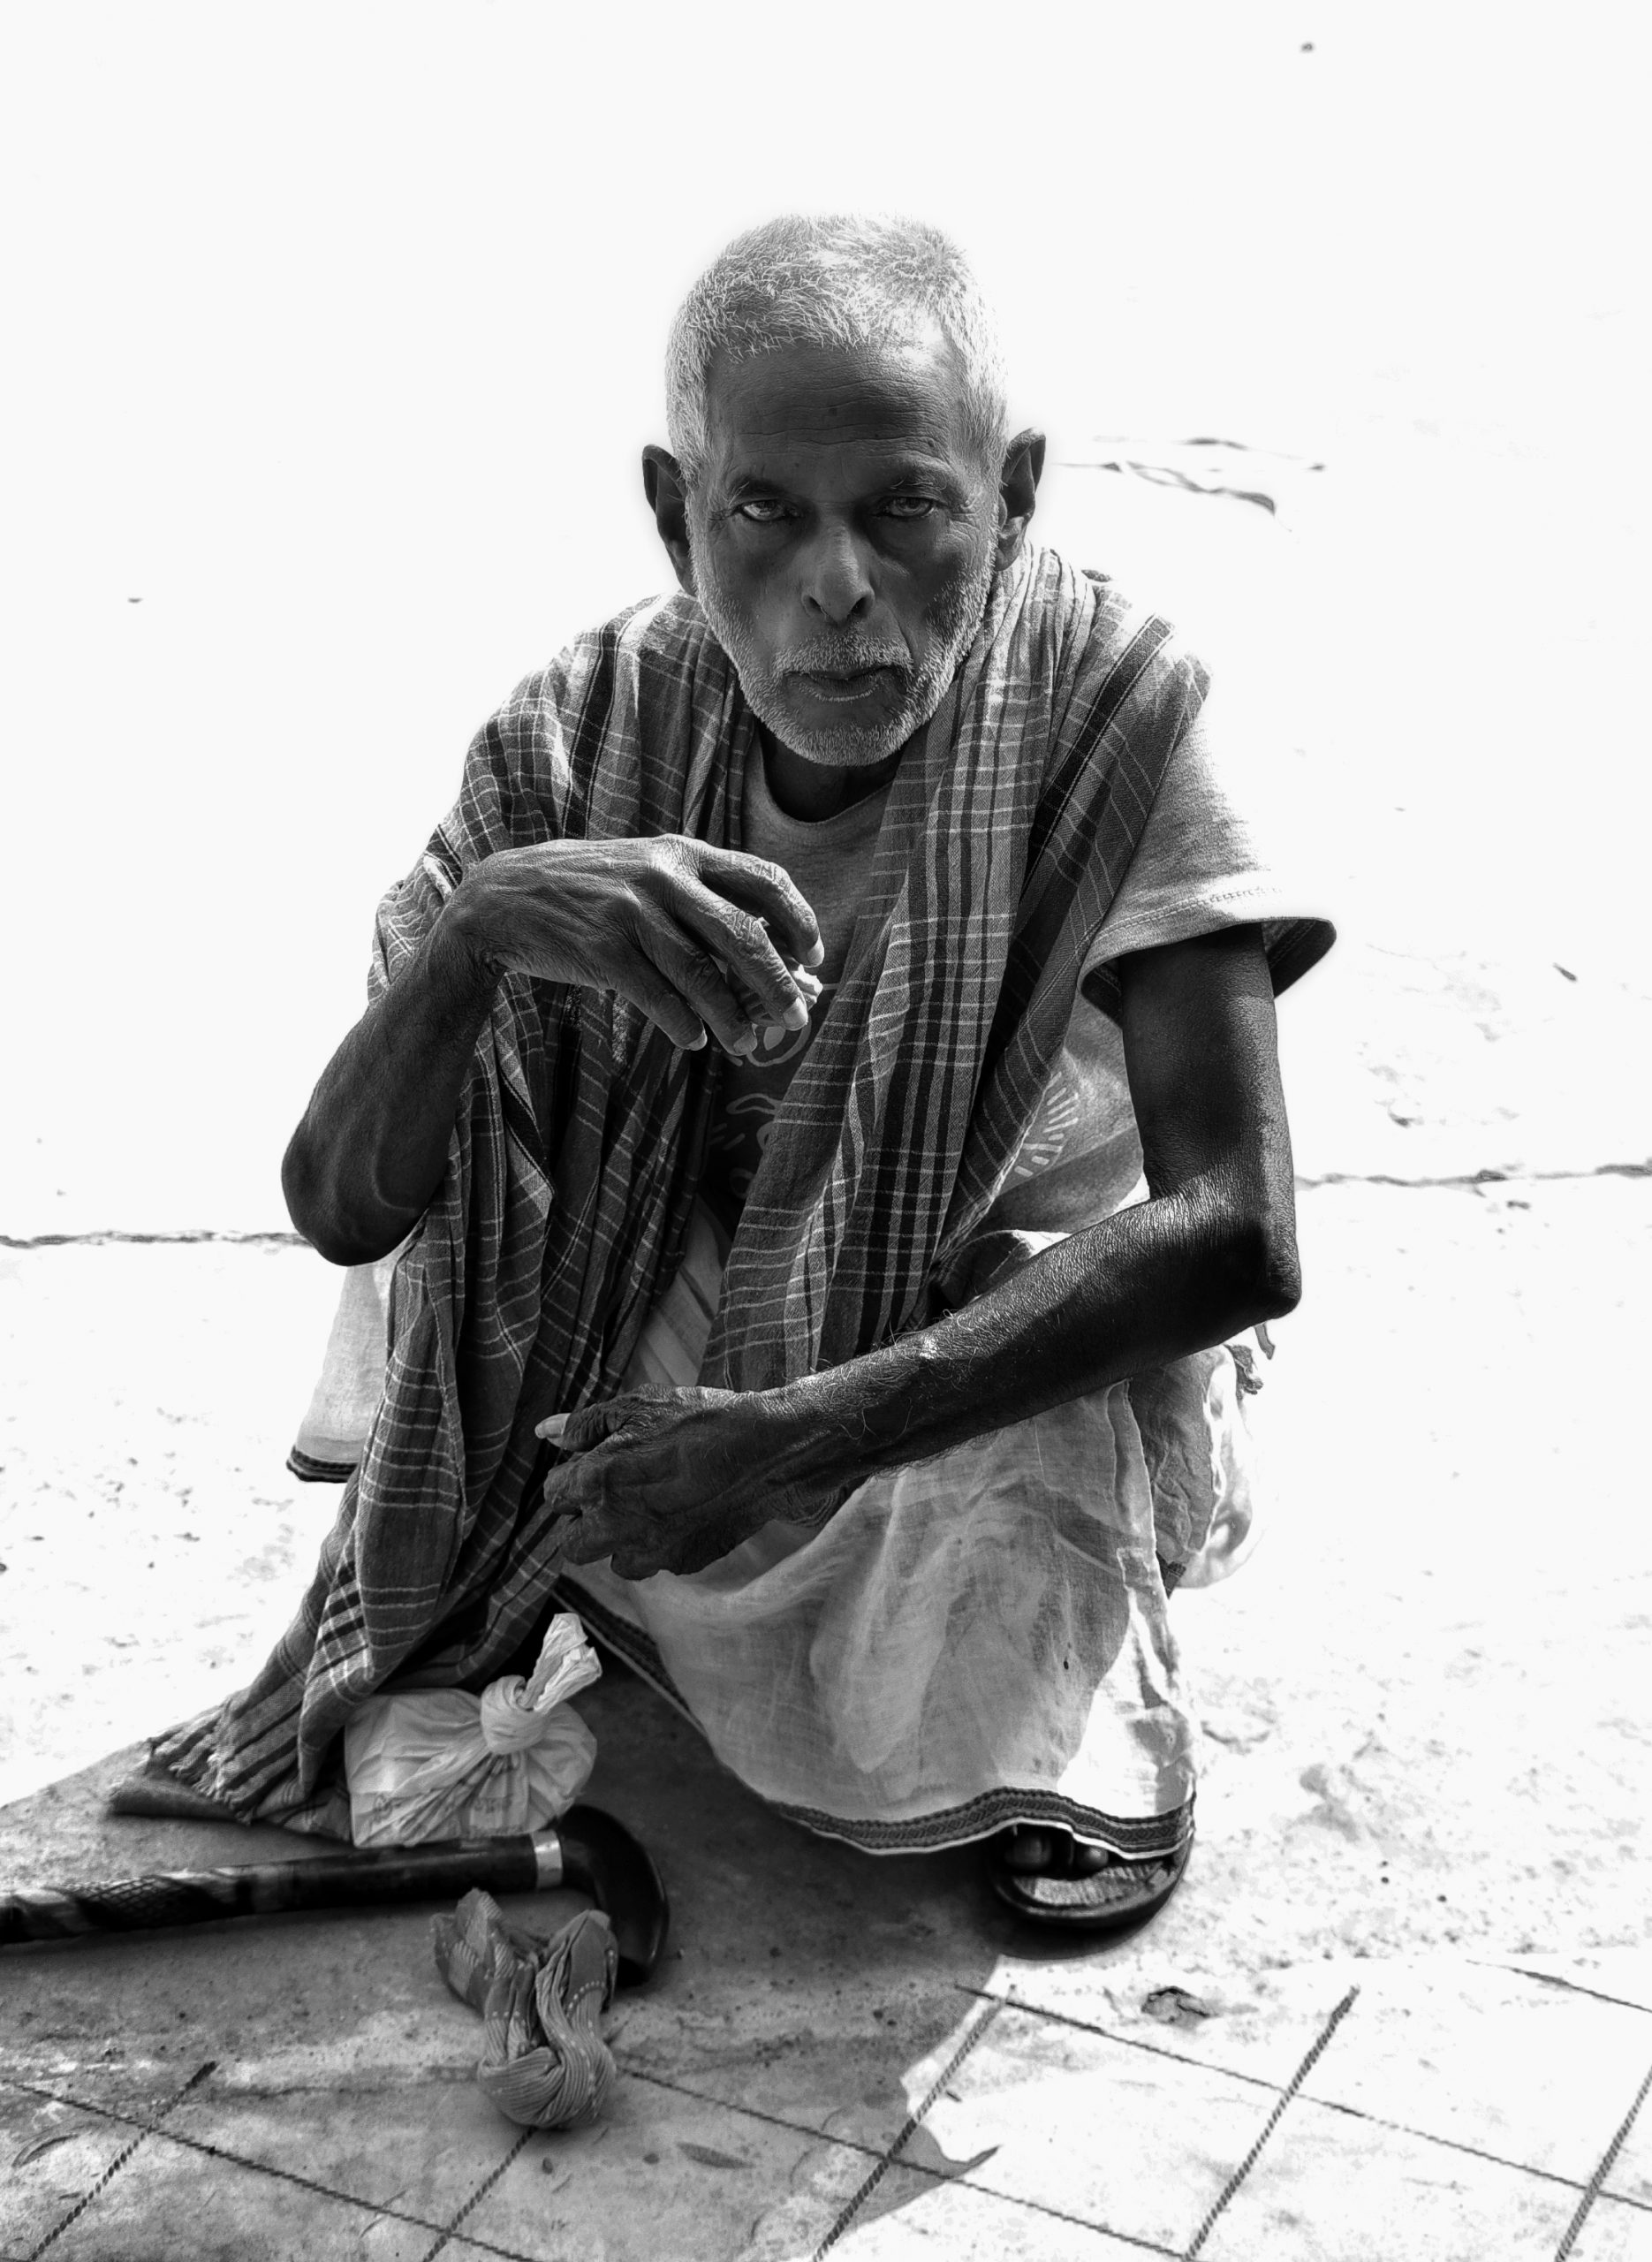 Old man sitting and eating food